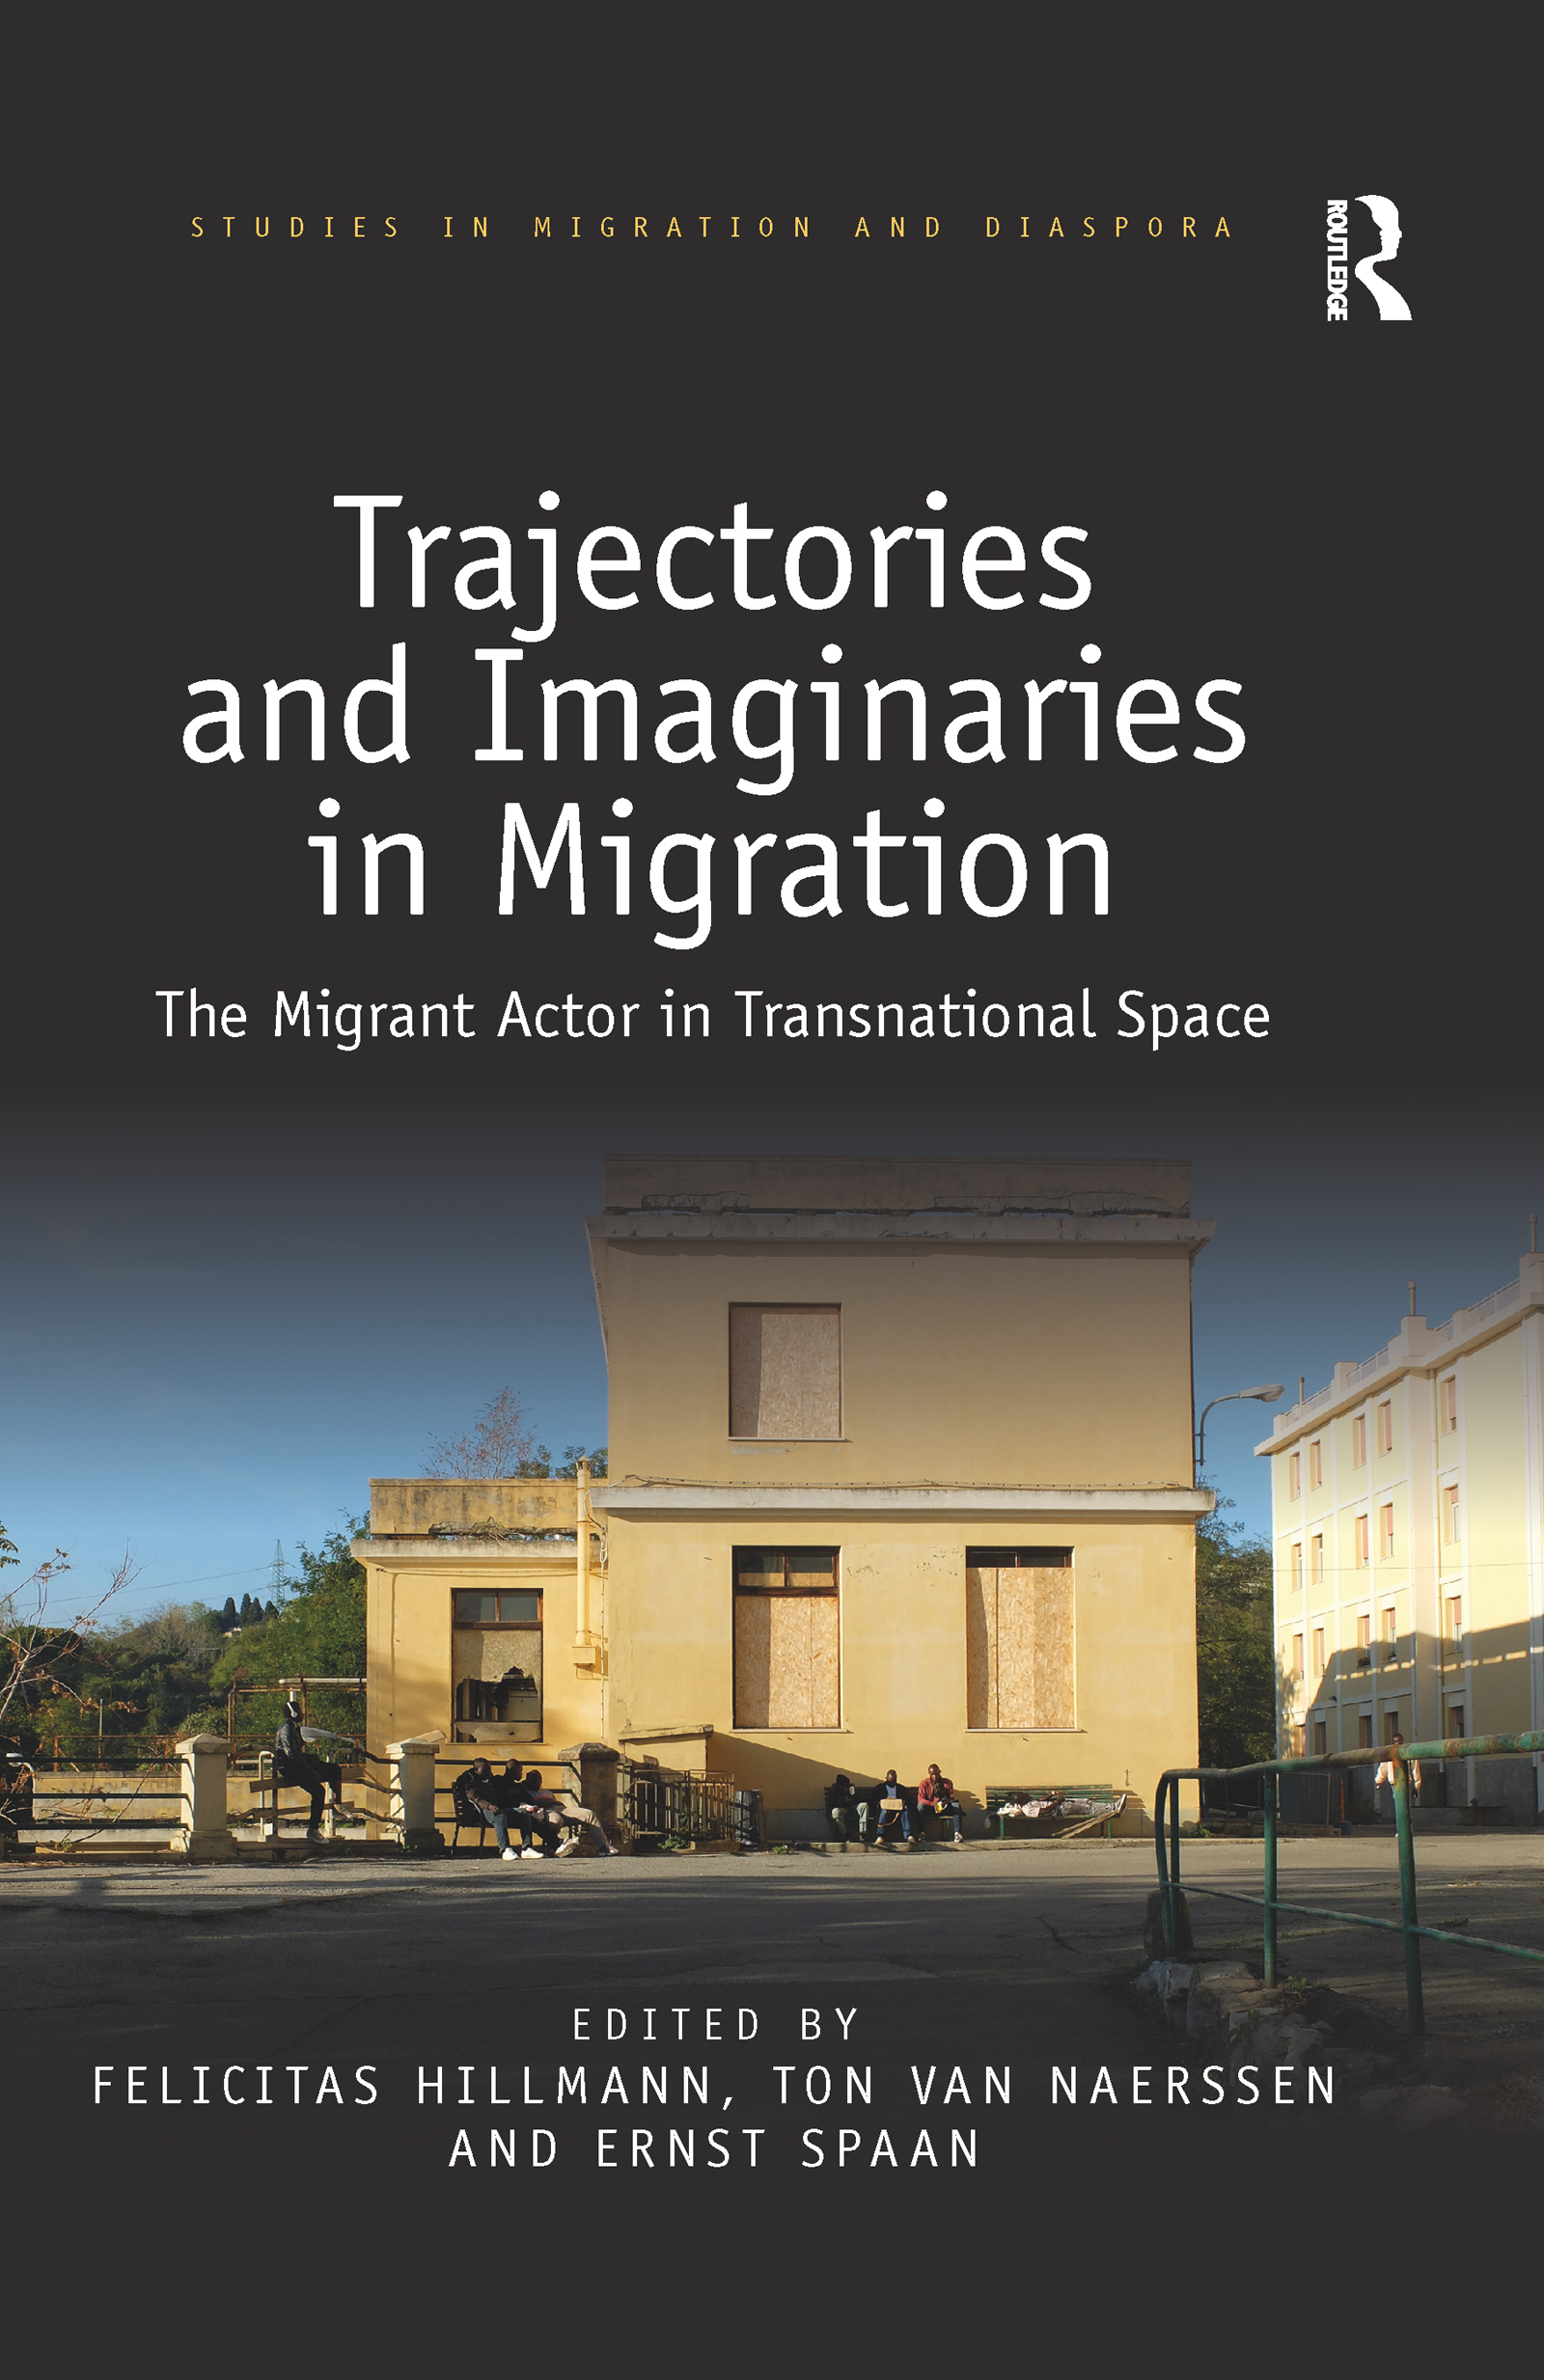 Trajectories and Imaginaries in Migration